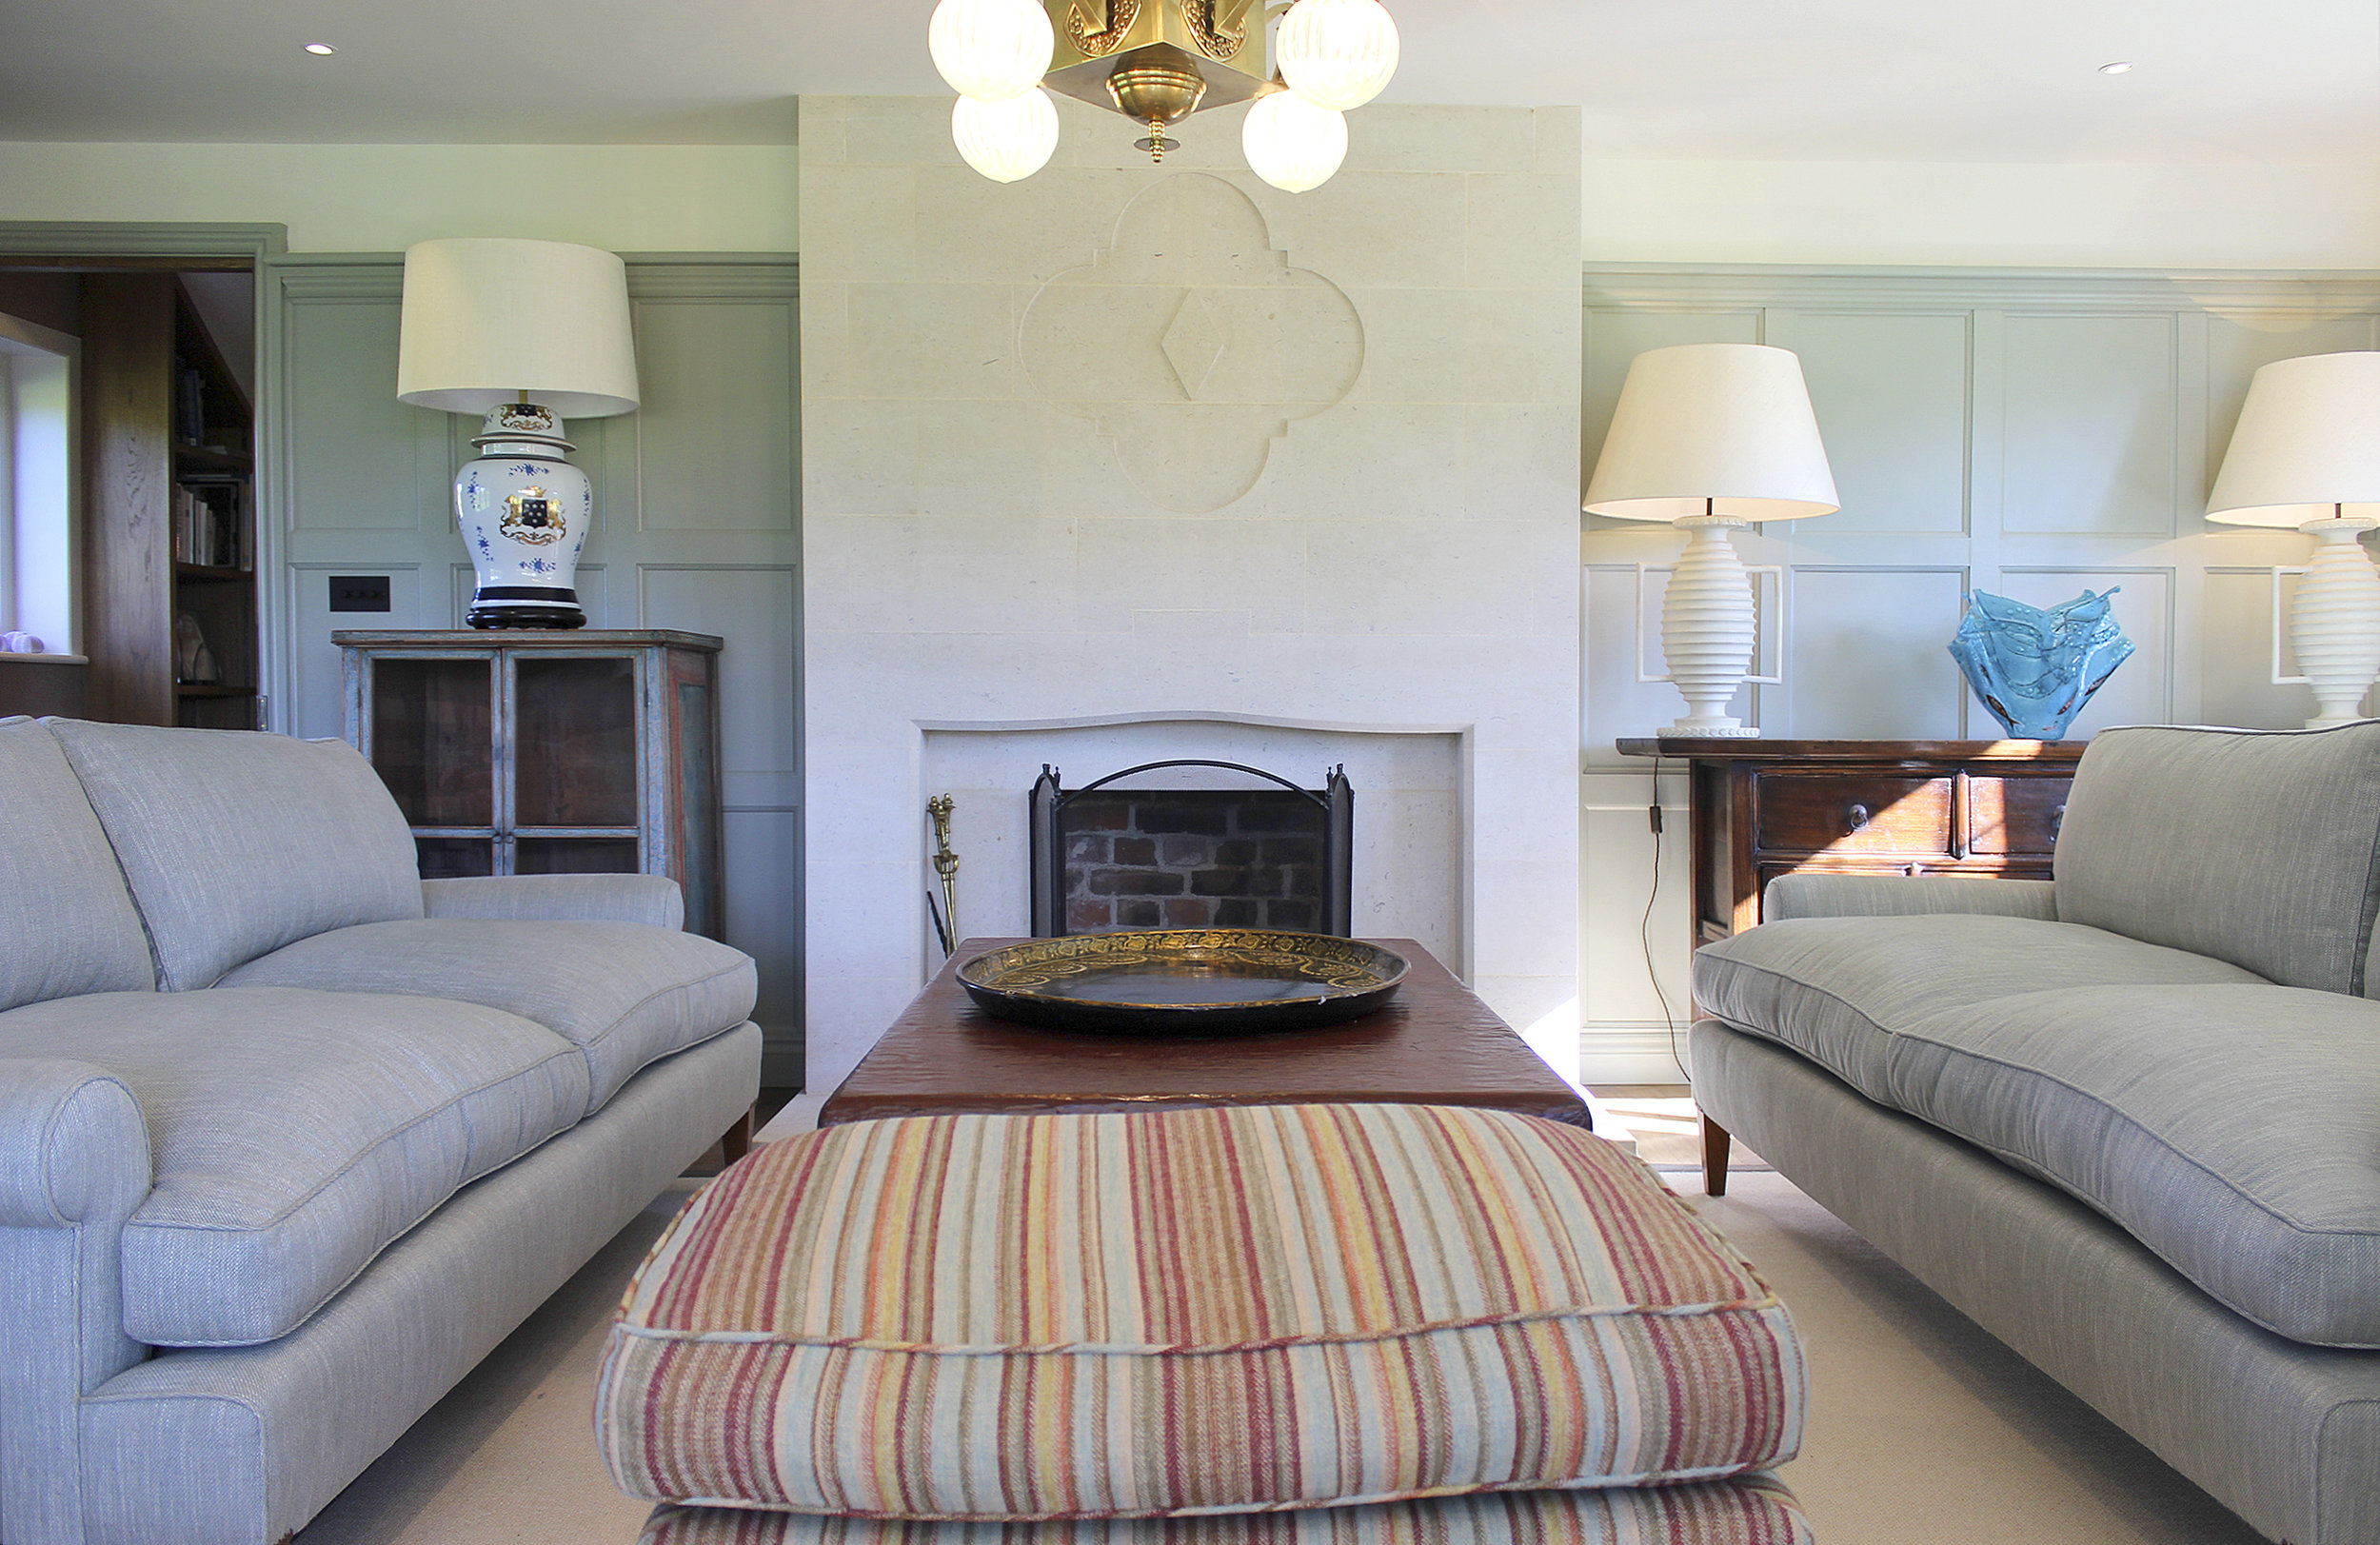 Drawing room area, with bespoke sandstone fireplace and handmade wooden panelling.